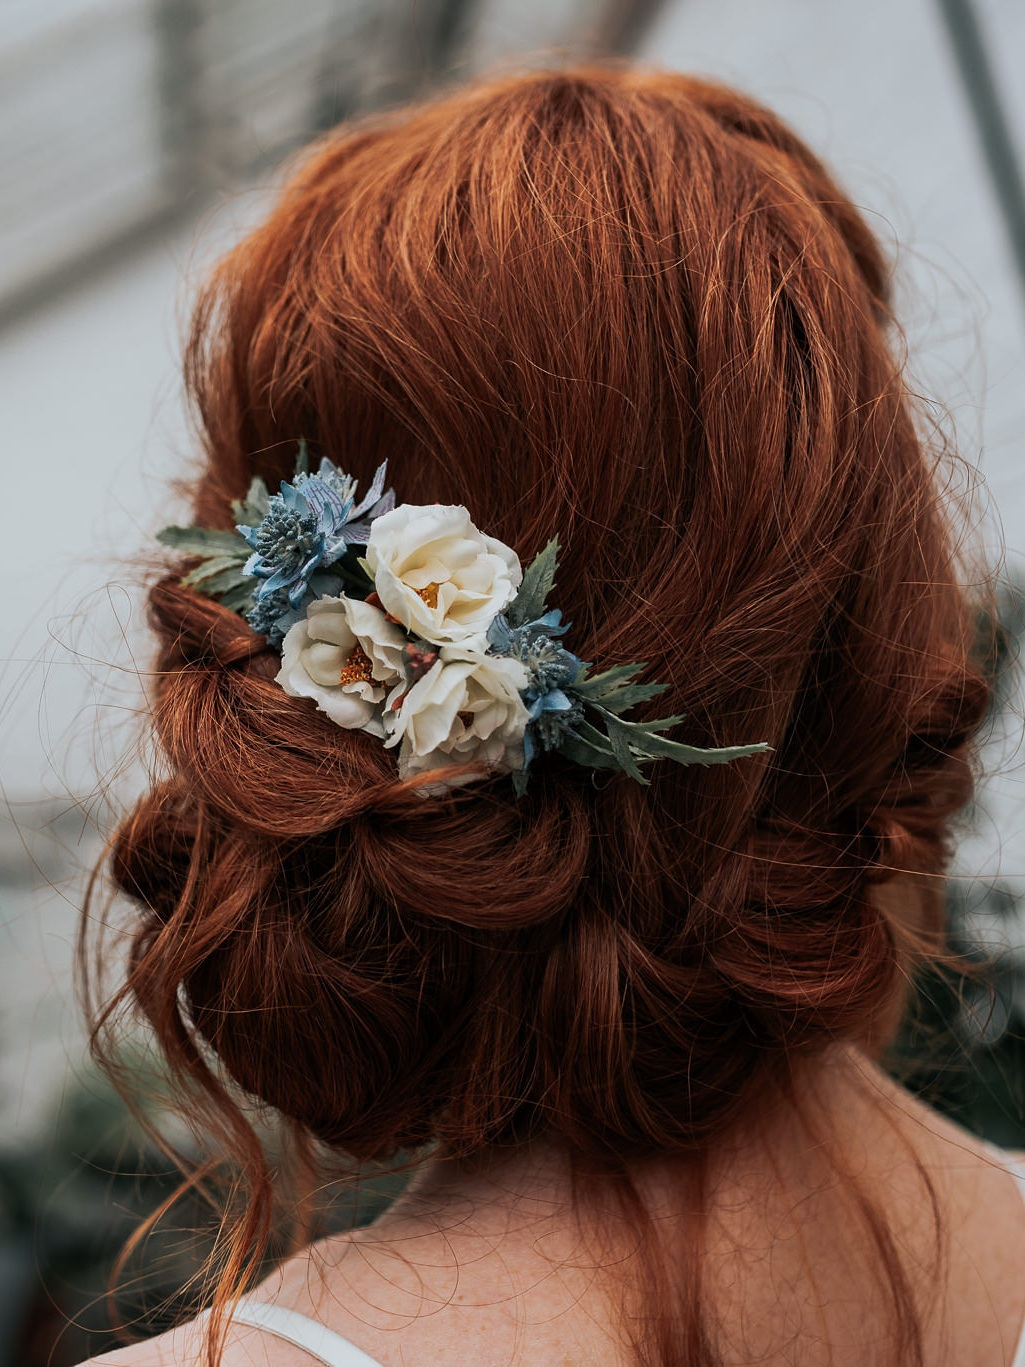 Romantic wild roses - The Sage Hair comb is perfect for maids, stylish and understated.